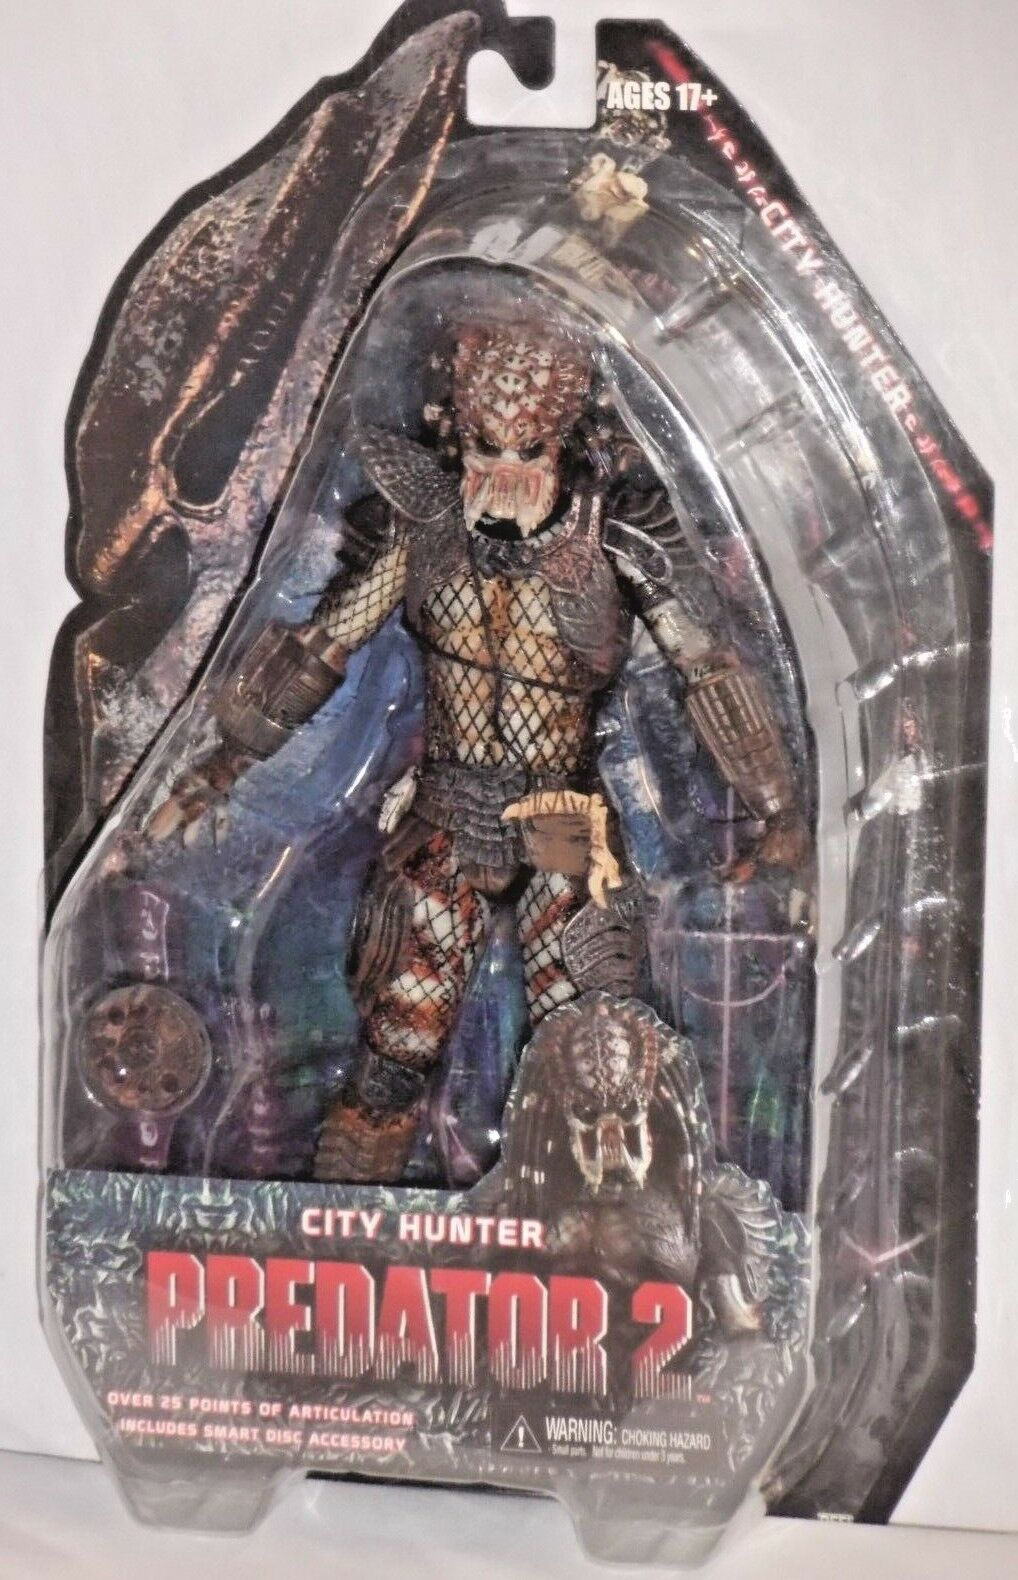 Neca protator 2 - serie 4 entlarvt city hunter kult - horrorfilm  action - figur.